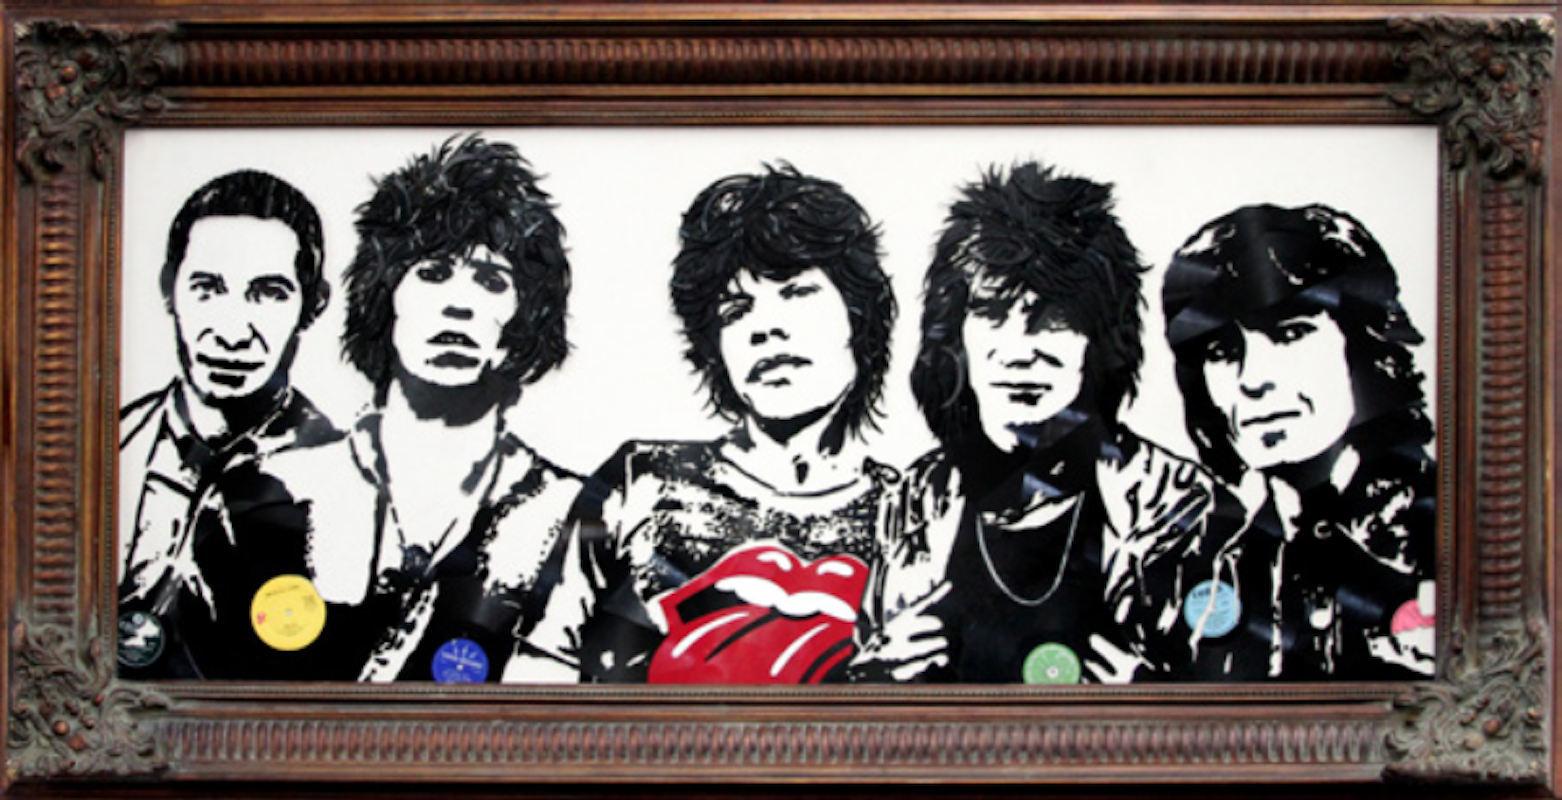 Rolling Stones by Mr. Brainwash